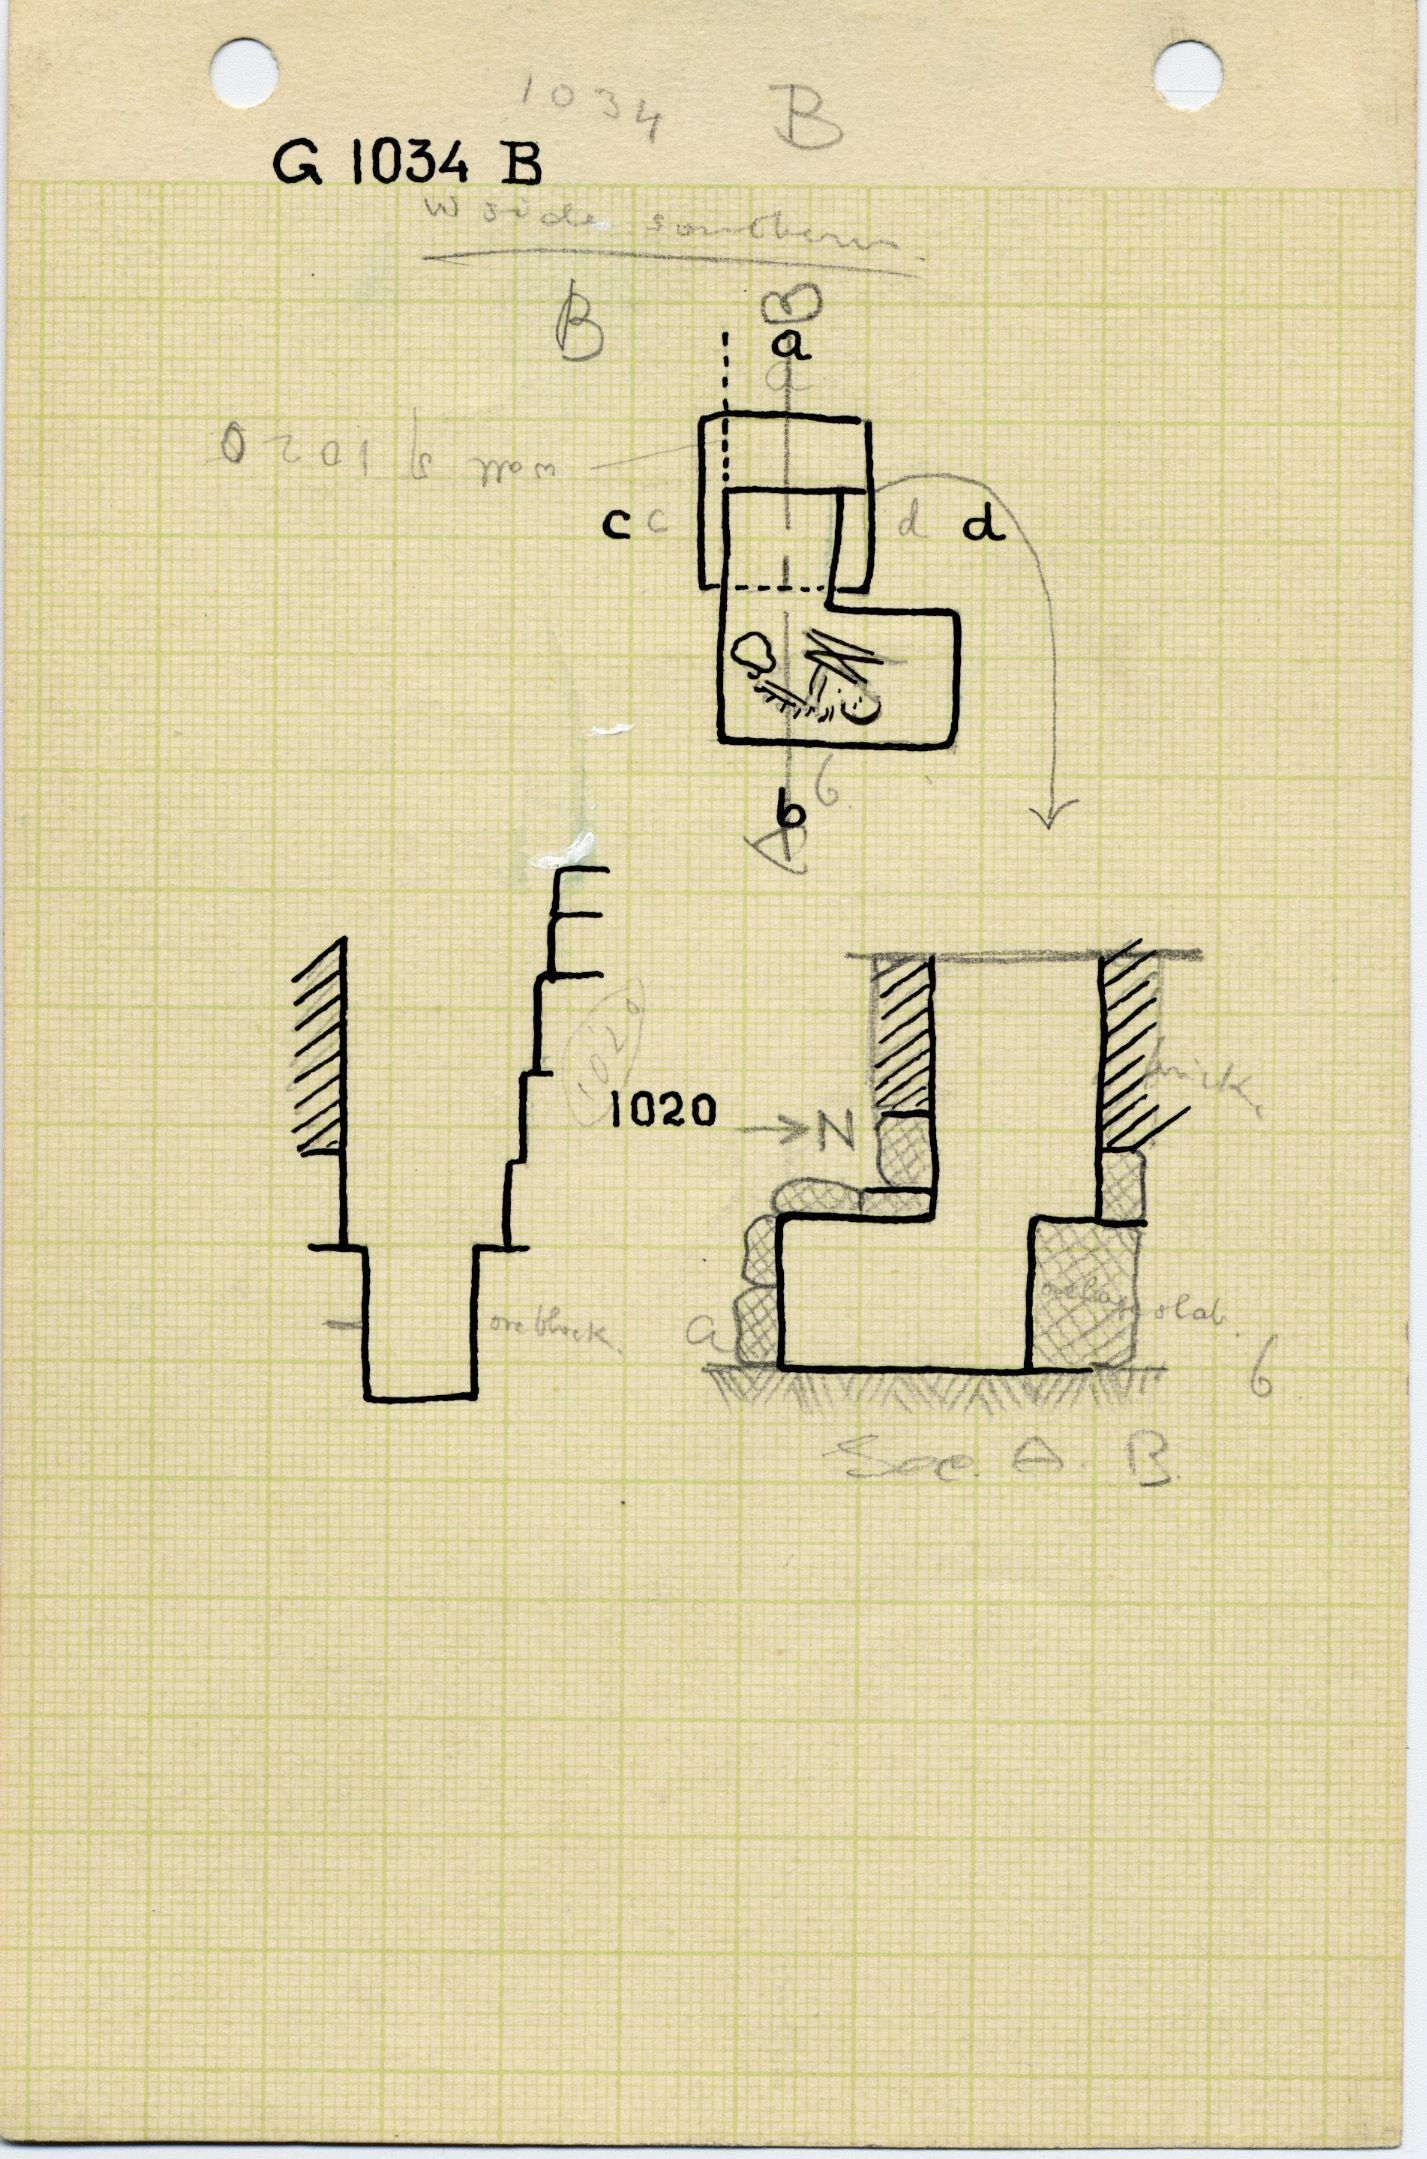 Maps and plans: G 1034, Shaft B